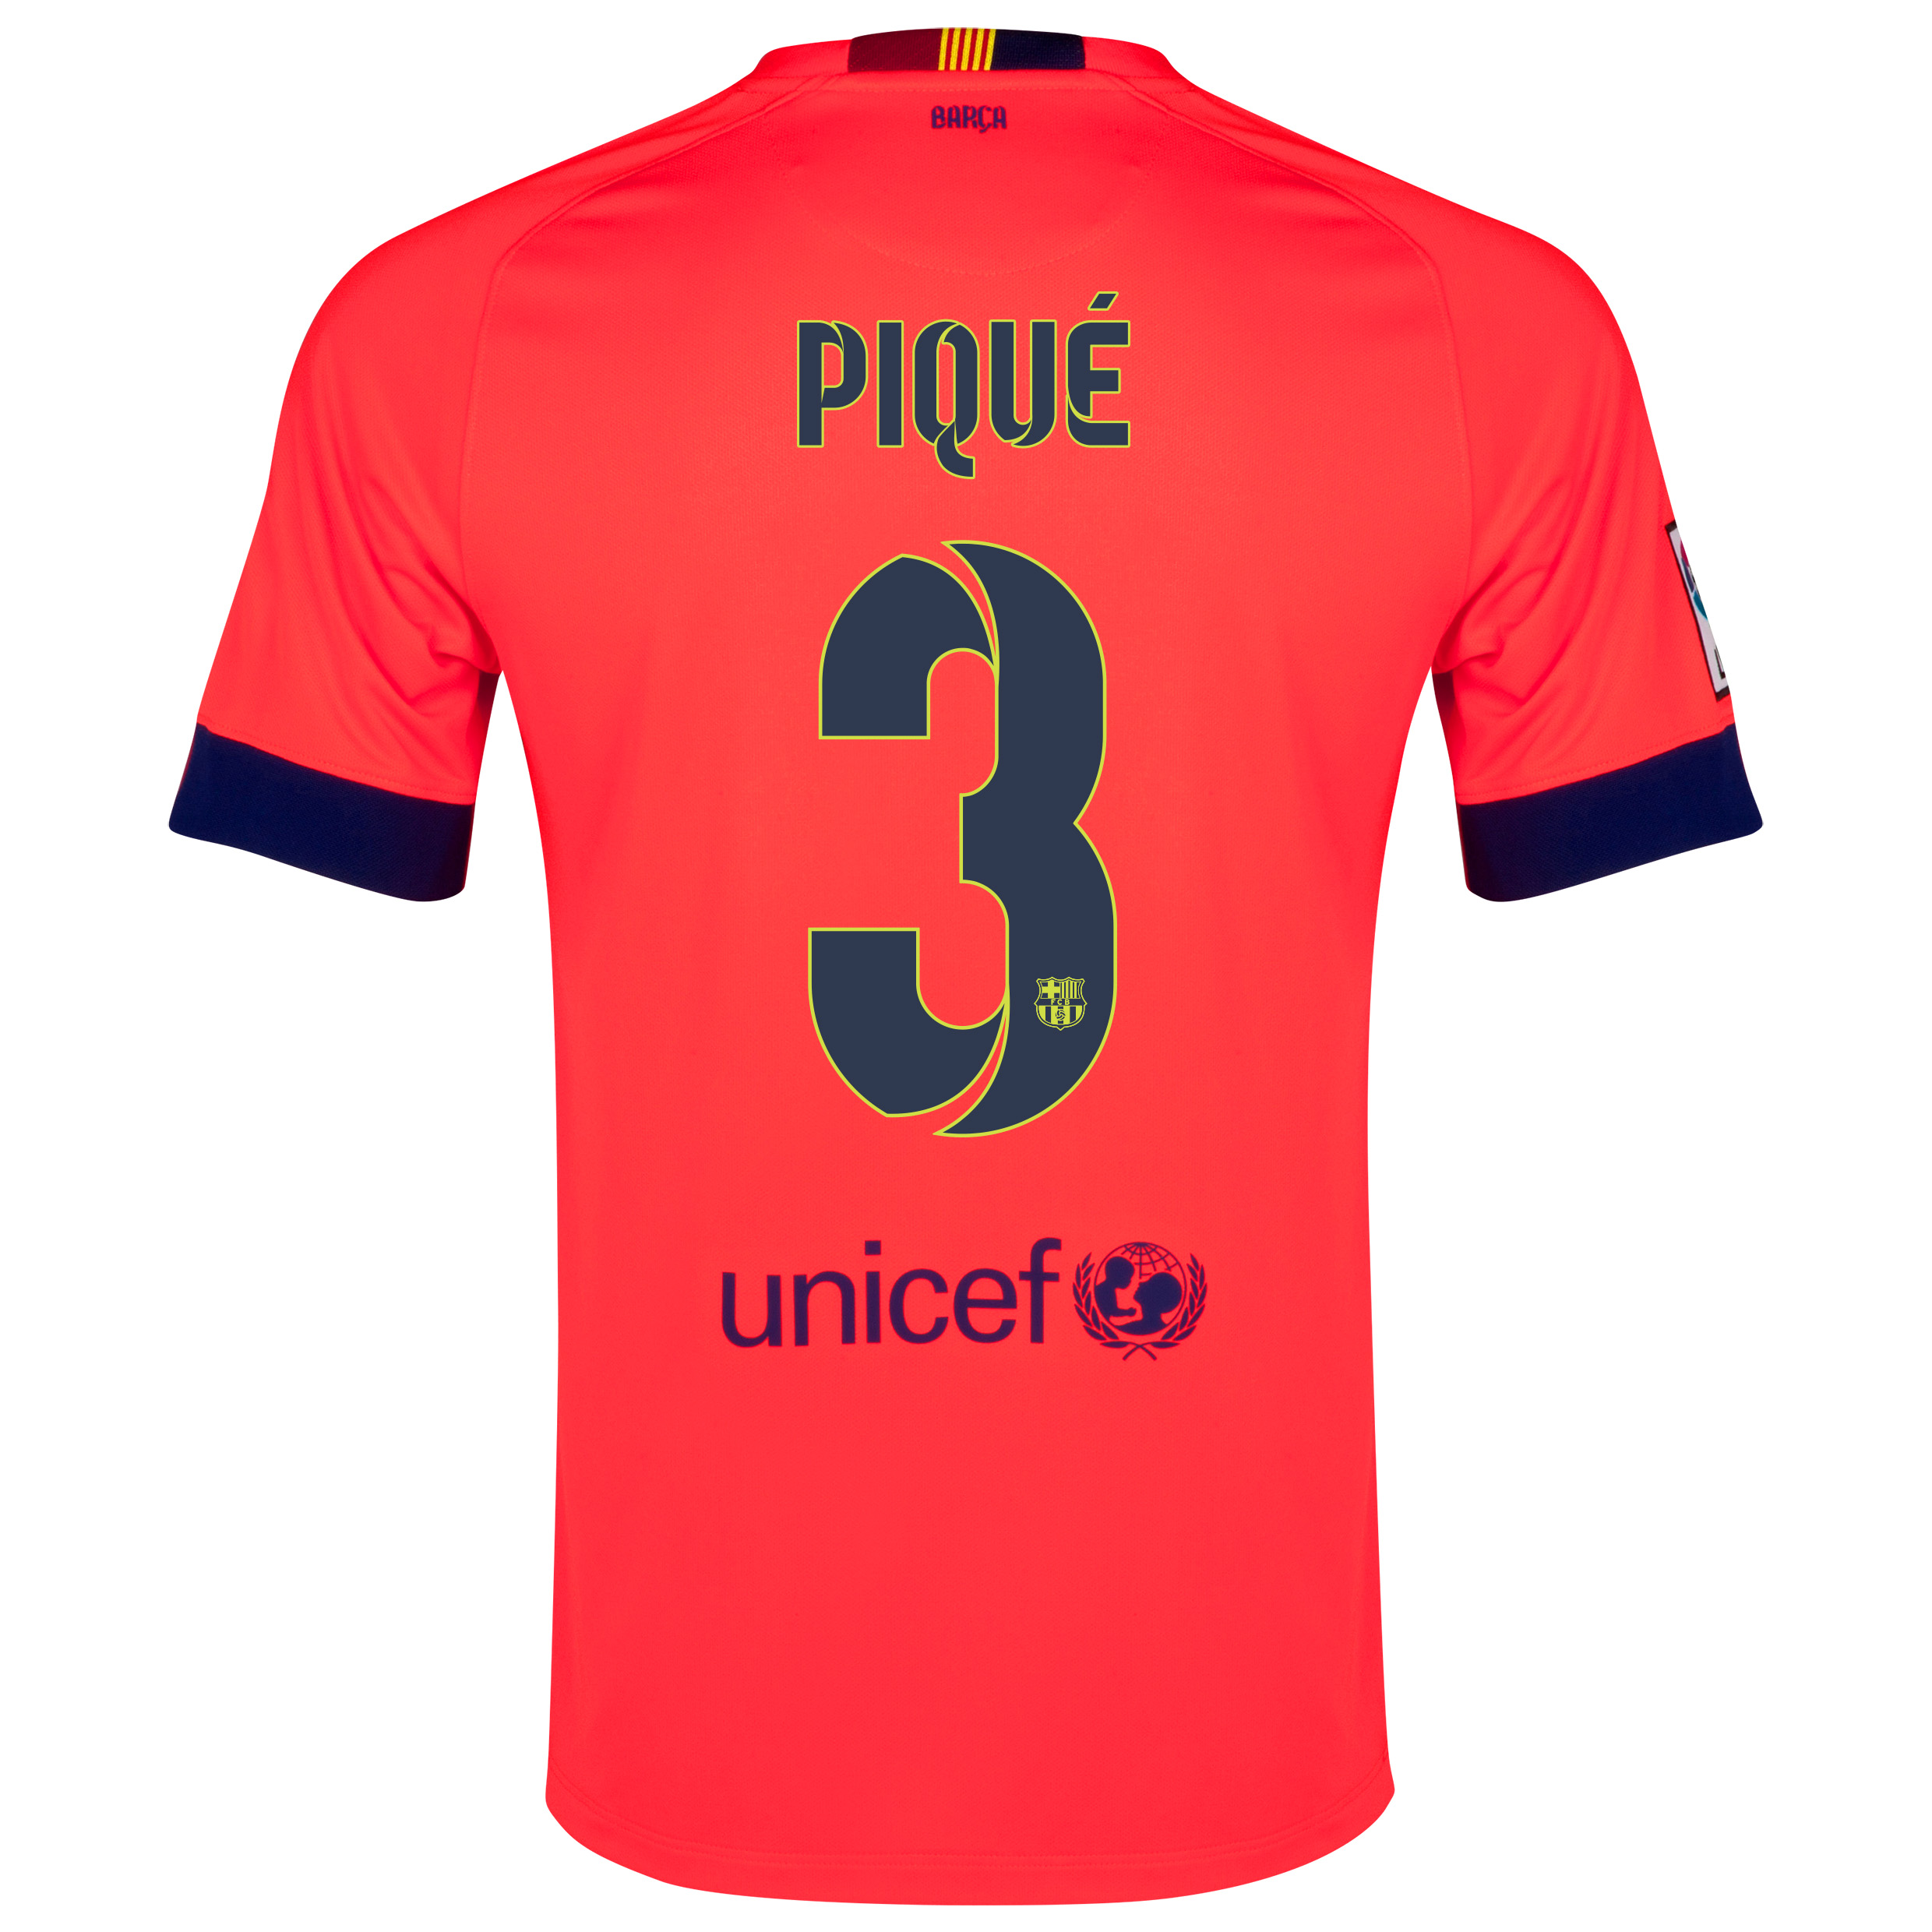 Barcelona Away Shirt 2014/15 - Kids Red with Pique 3 printing